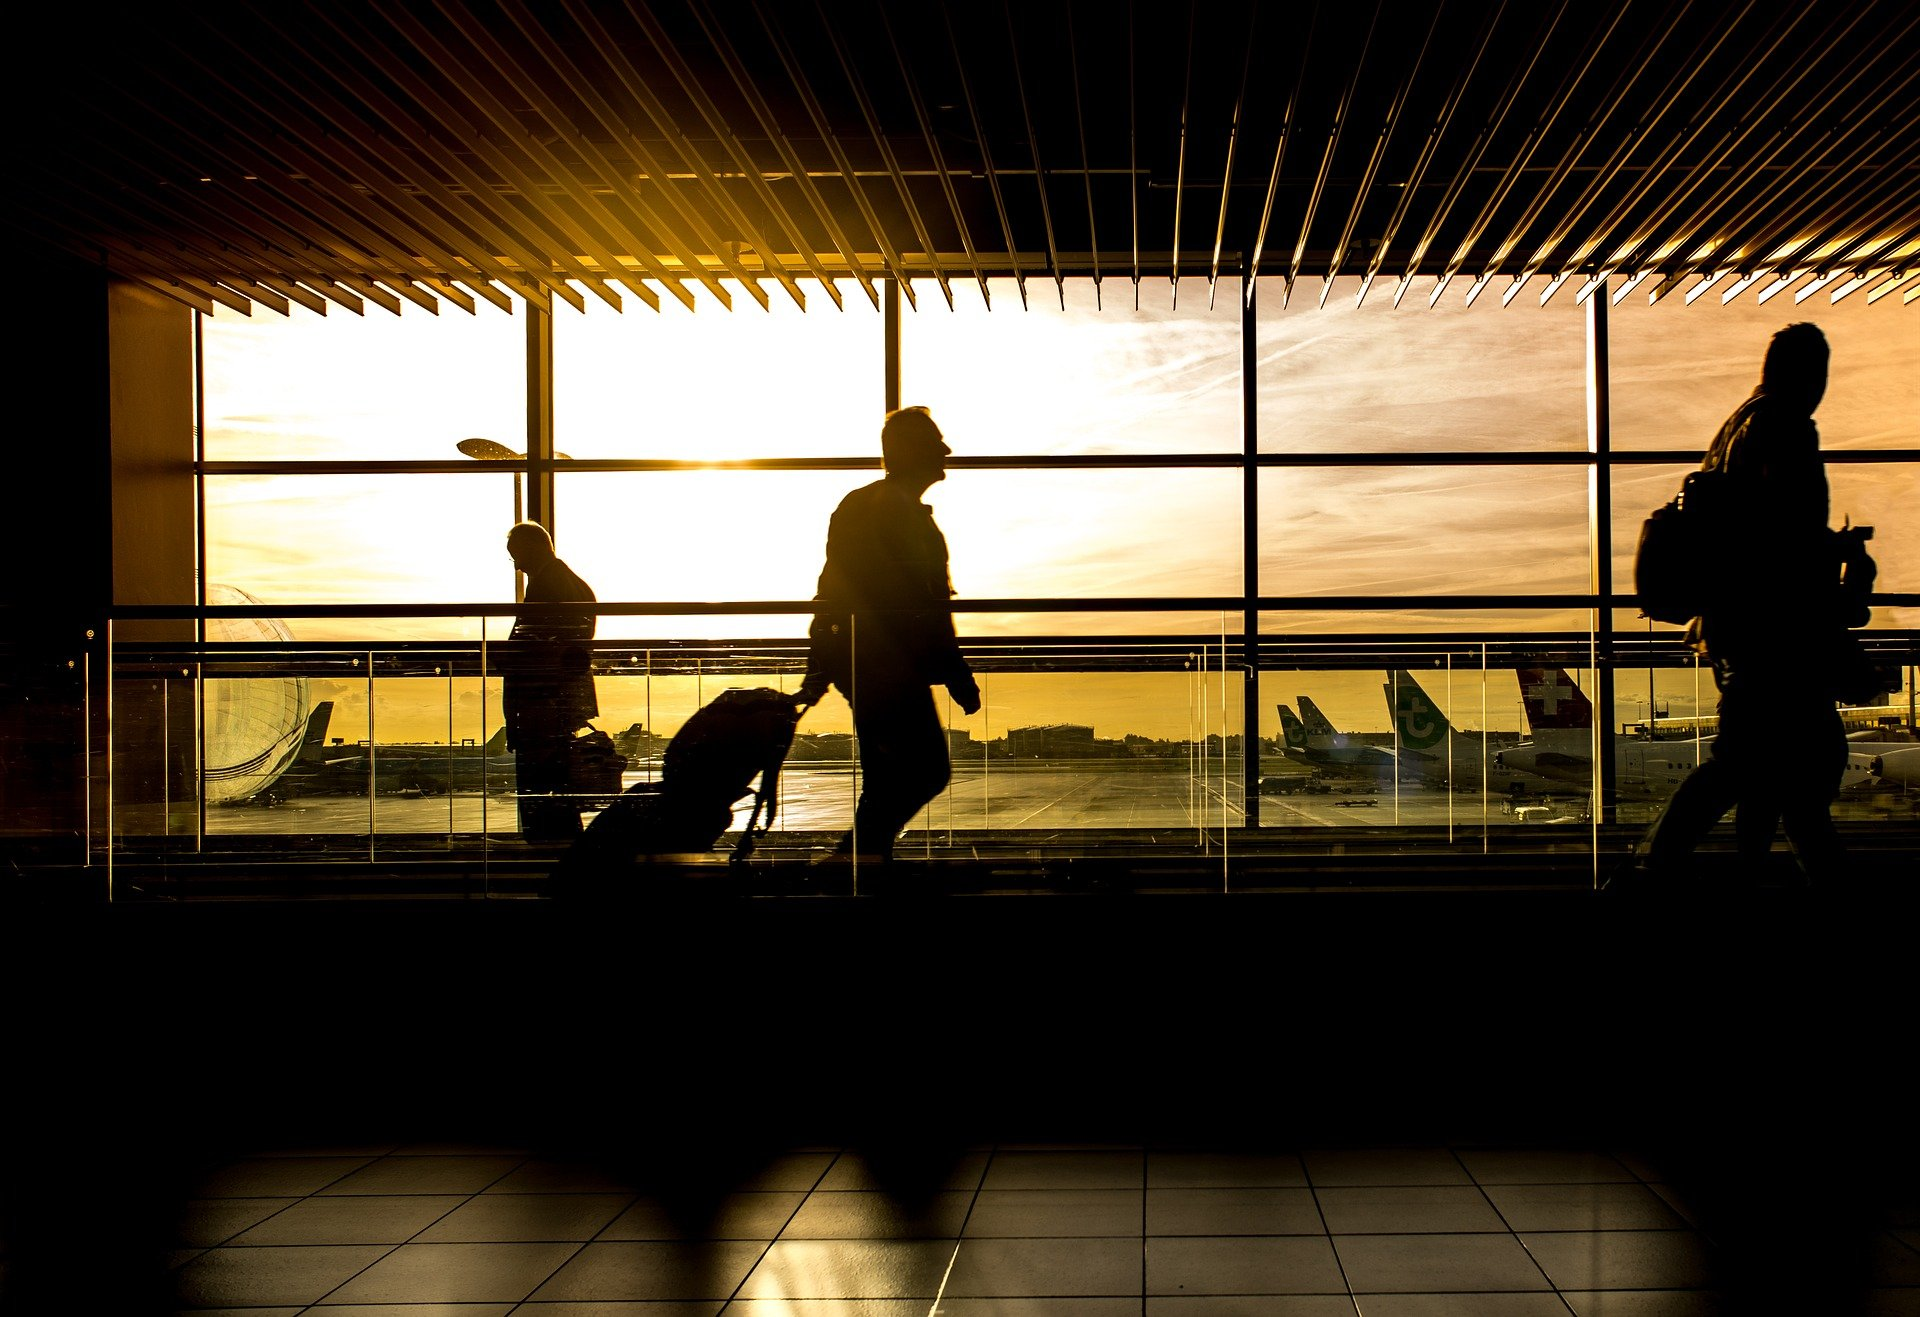 What Should a Business Owner Do If an Employee Travels to a High-Risk Area?